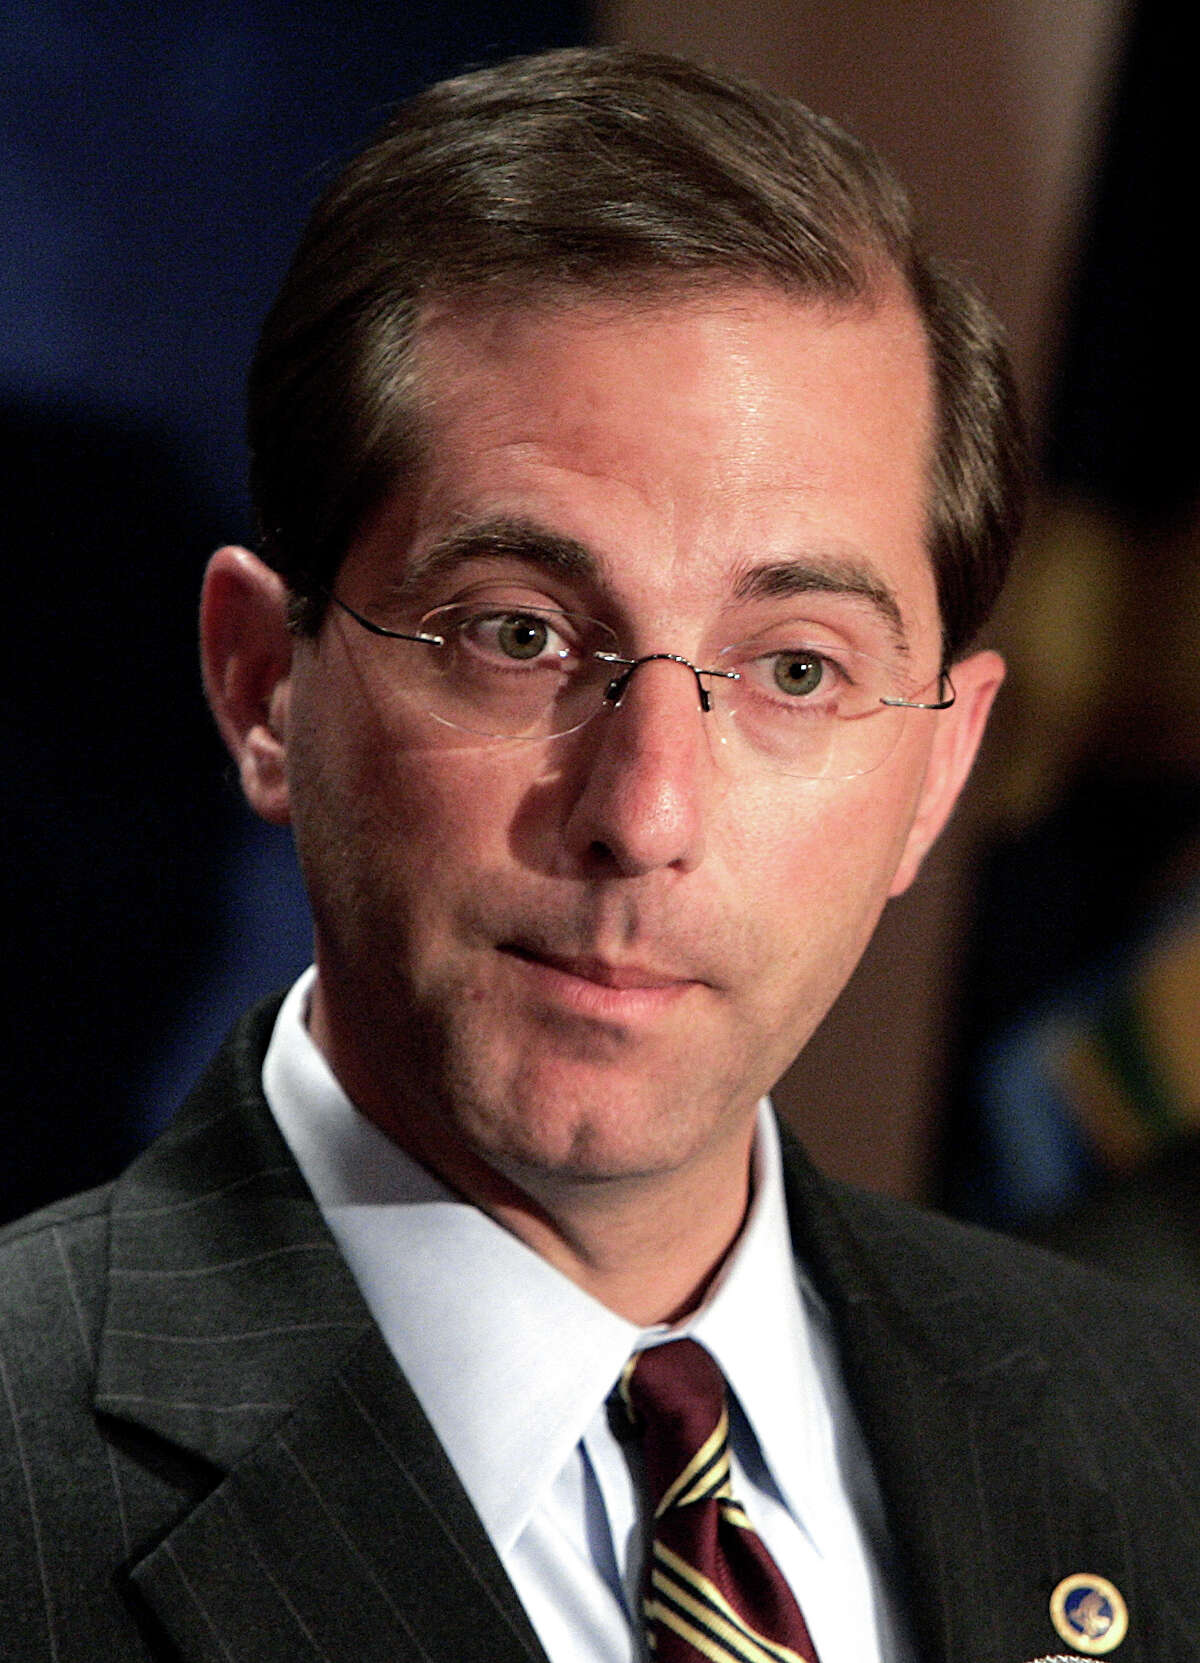 FILE - In this April 25, 2006 file photo, Alex Azar, then U.S. Department of Health and Human Services Deputy Secretary, speaks at a state of Michigan pandemic influenza summit in Detroit. Newly disclosed financial records show that Azar, President Donald TrumpÂ?'s nominee to become secretary for the Health and Human Services Department, reaped big earnings during his tenure as a top pharmaceutical executive. (AP Photo/Paul Sancya)